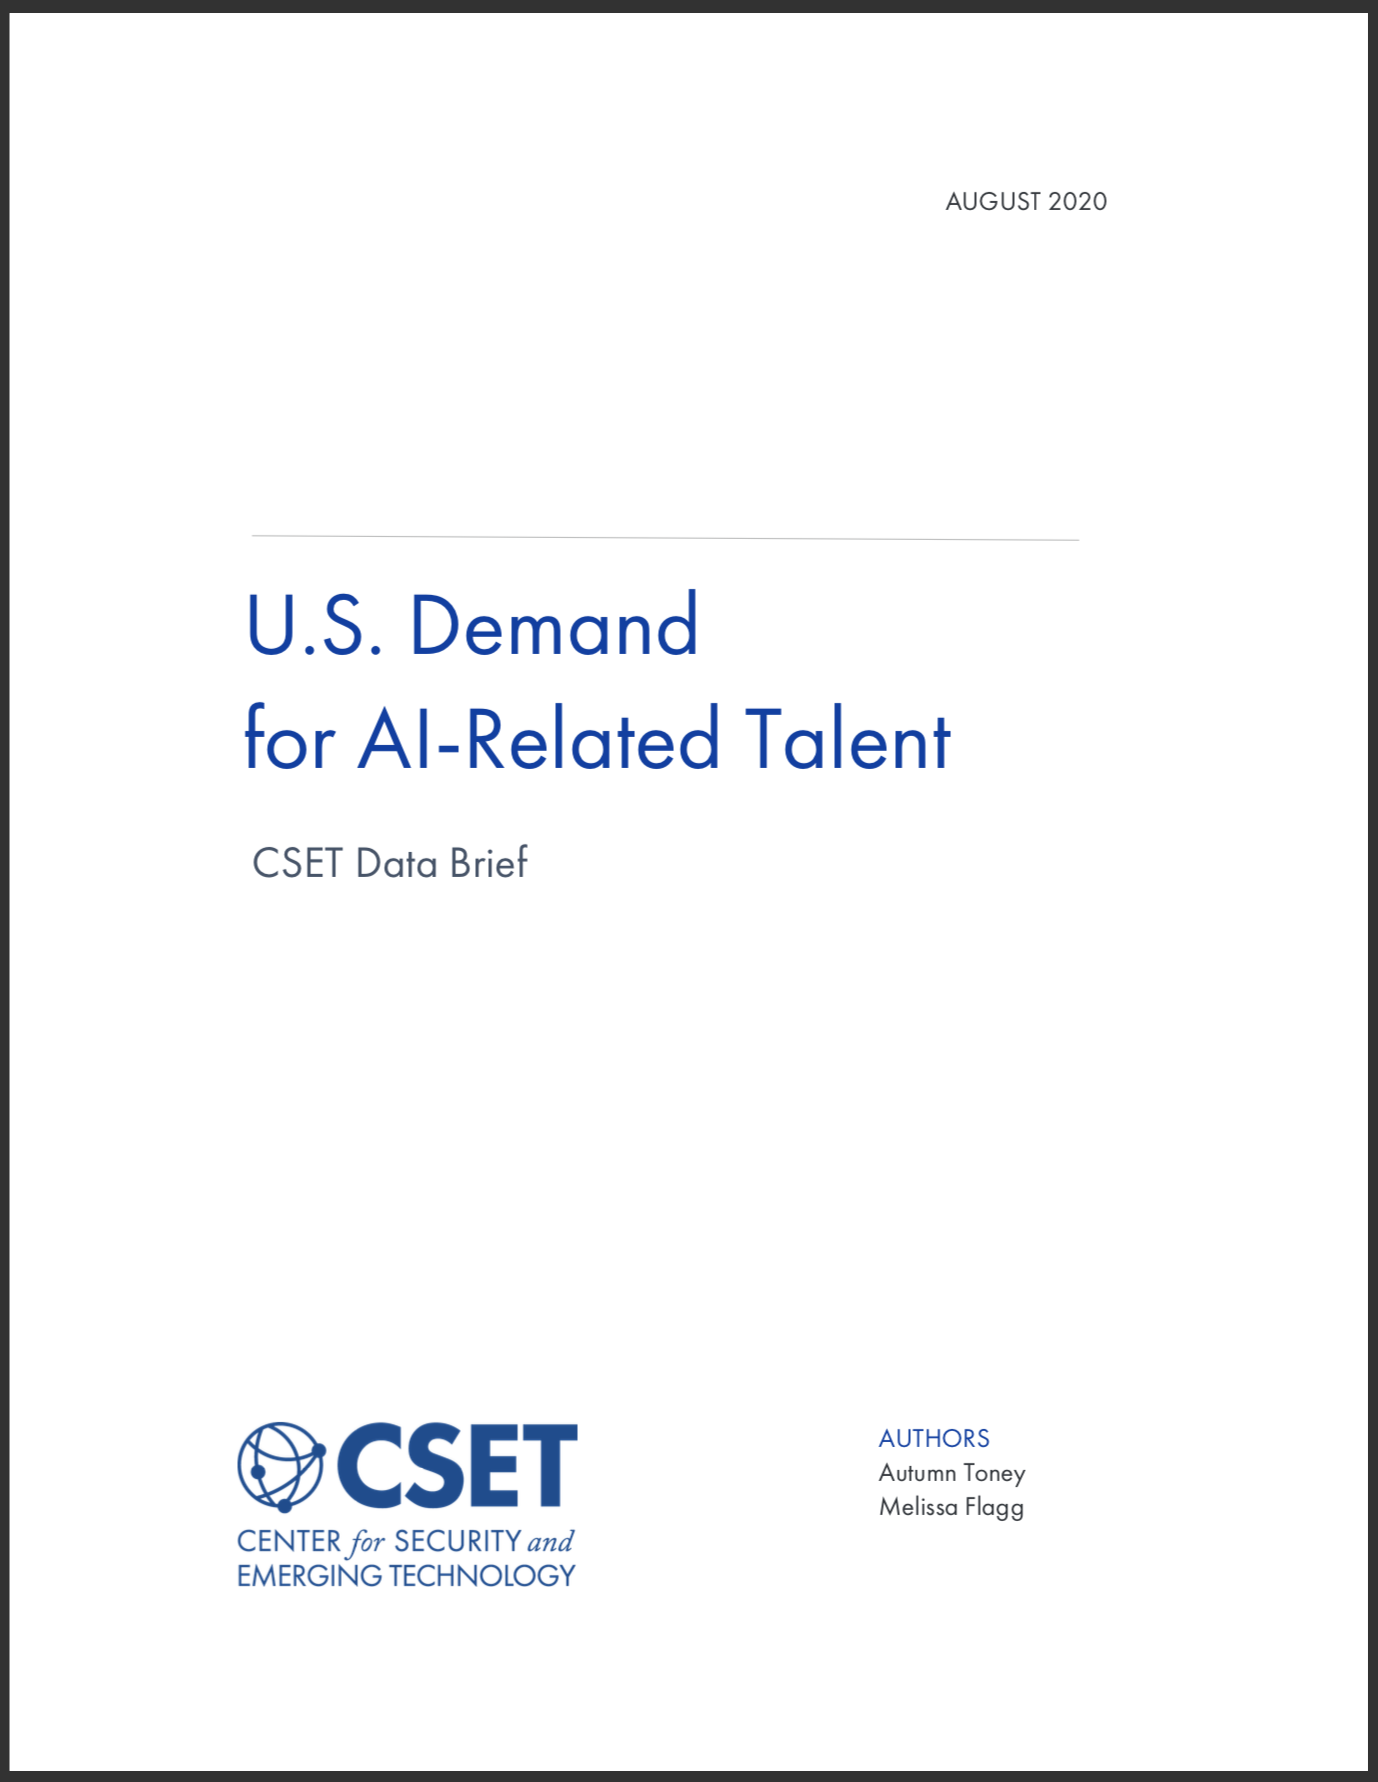 U.S. Demand for AI-Related Talent Brief Cover